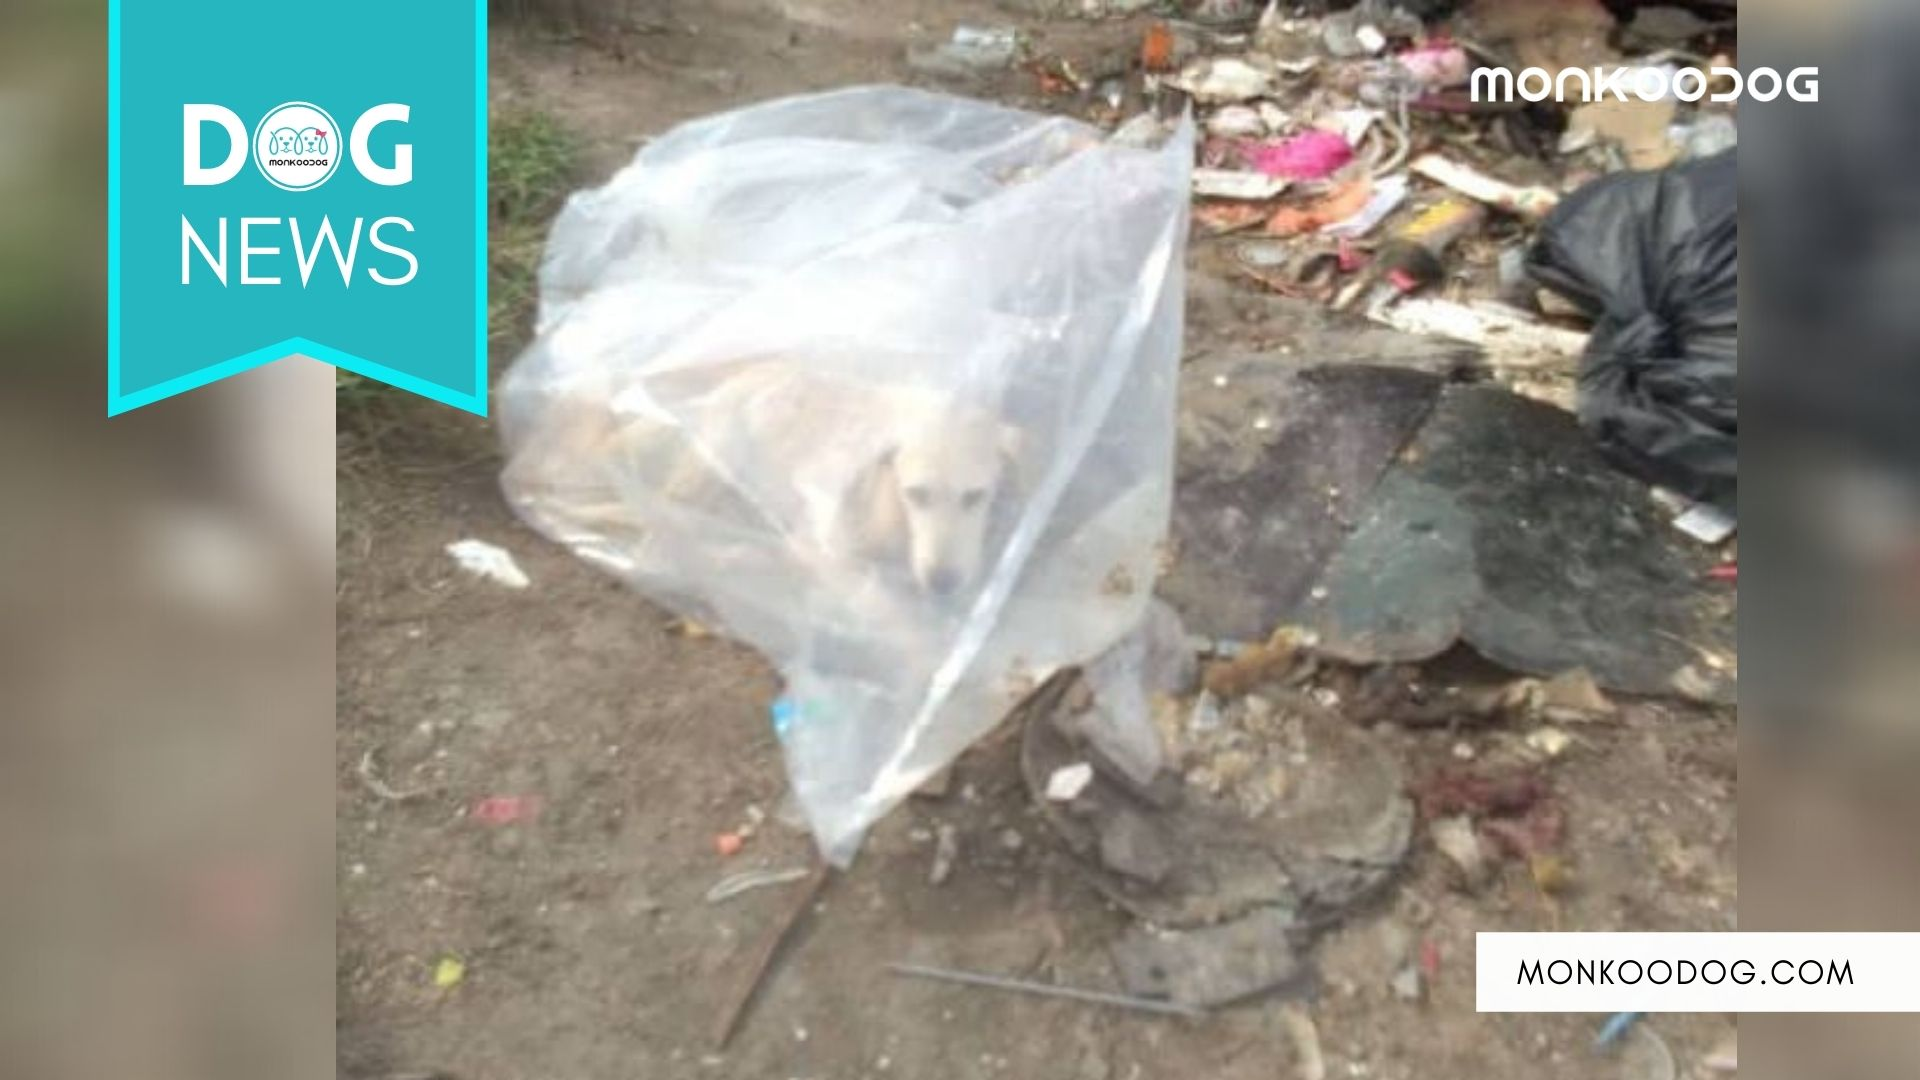 Dog Stranded by Owners In A Plastic Bag to Die